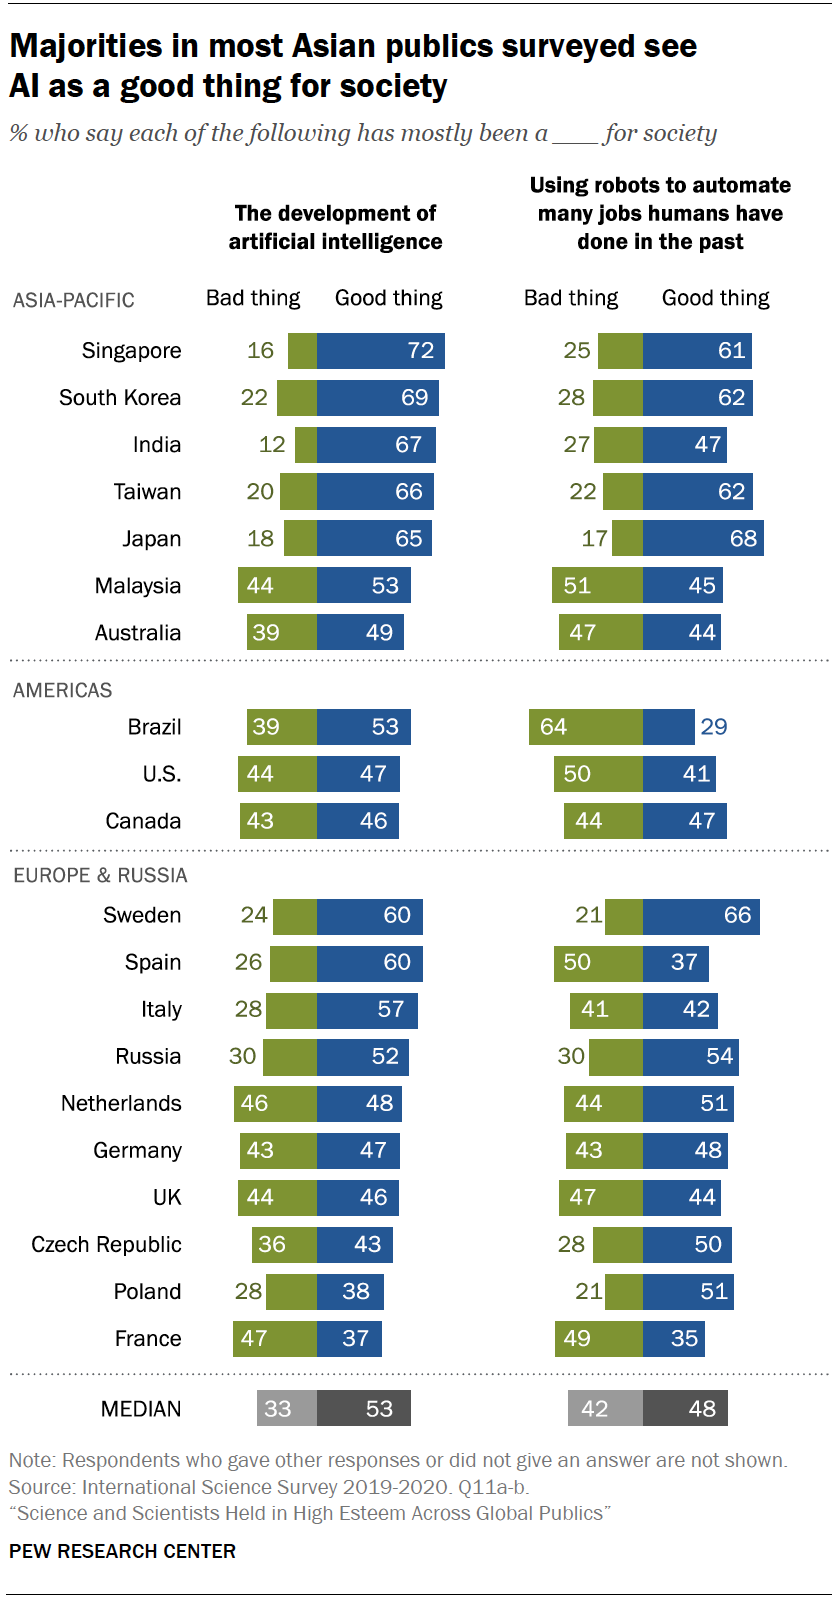 Chart shows majorities in most Asian publics surveyed see AI as a good thing for society